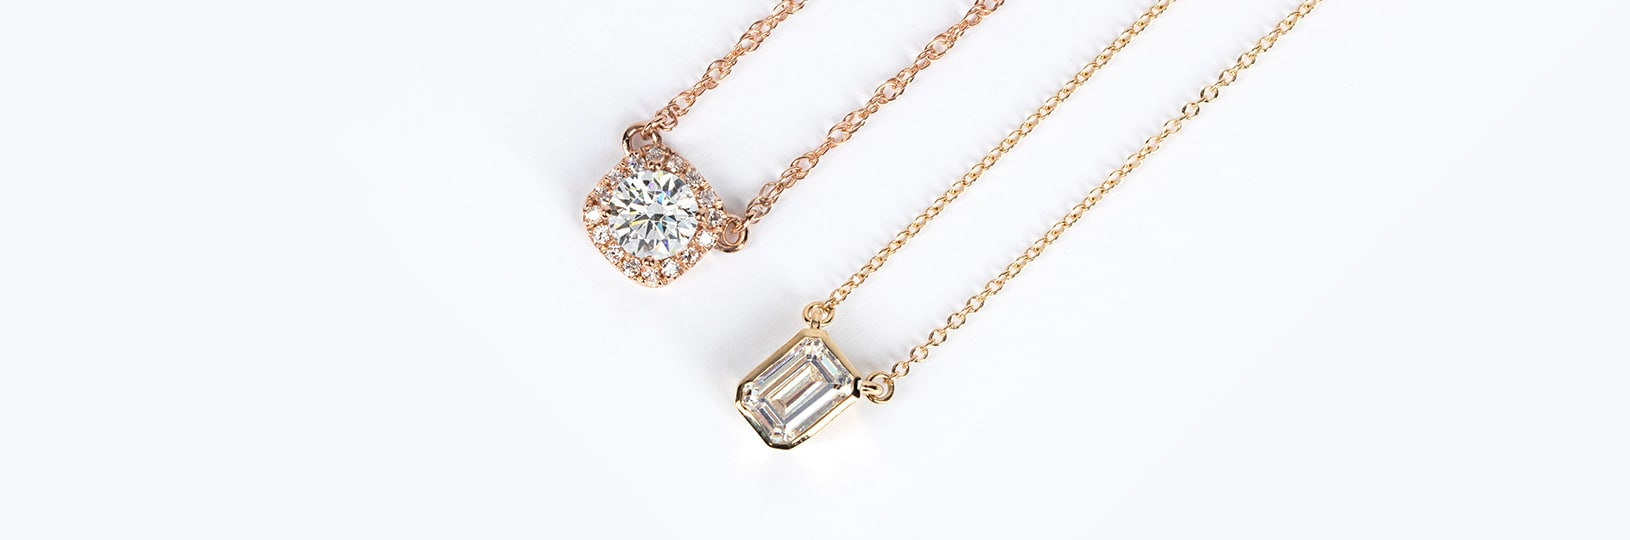 Simulated diamond necklaces.